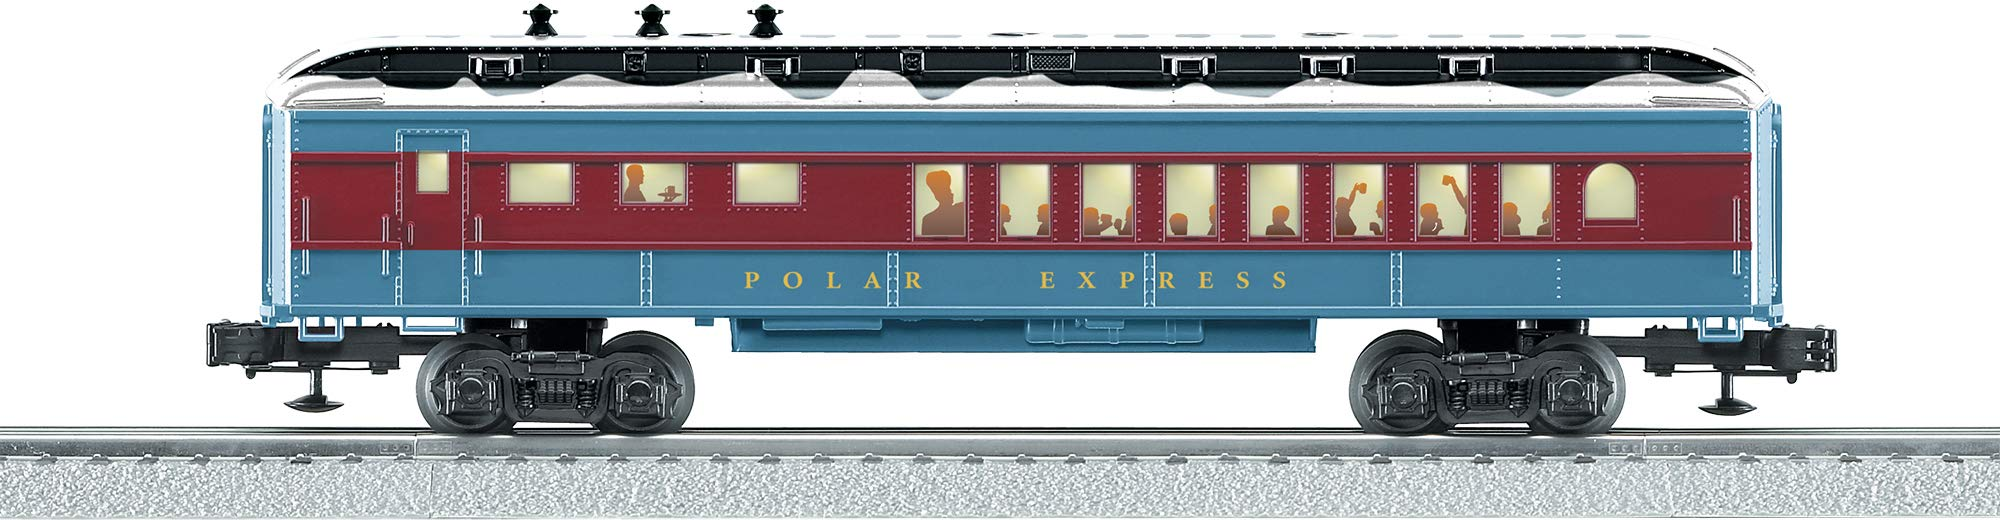 Lionel The Polar Express, Electric O Gauge Model